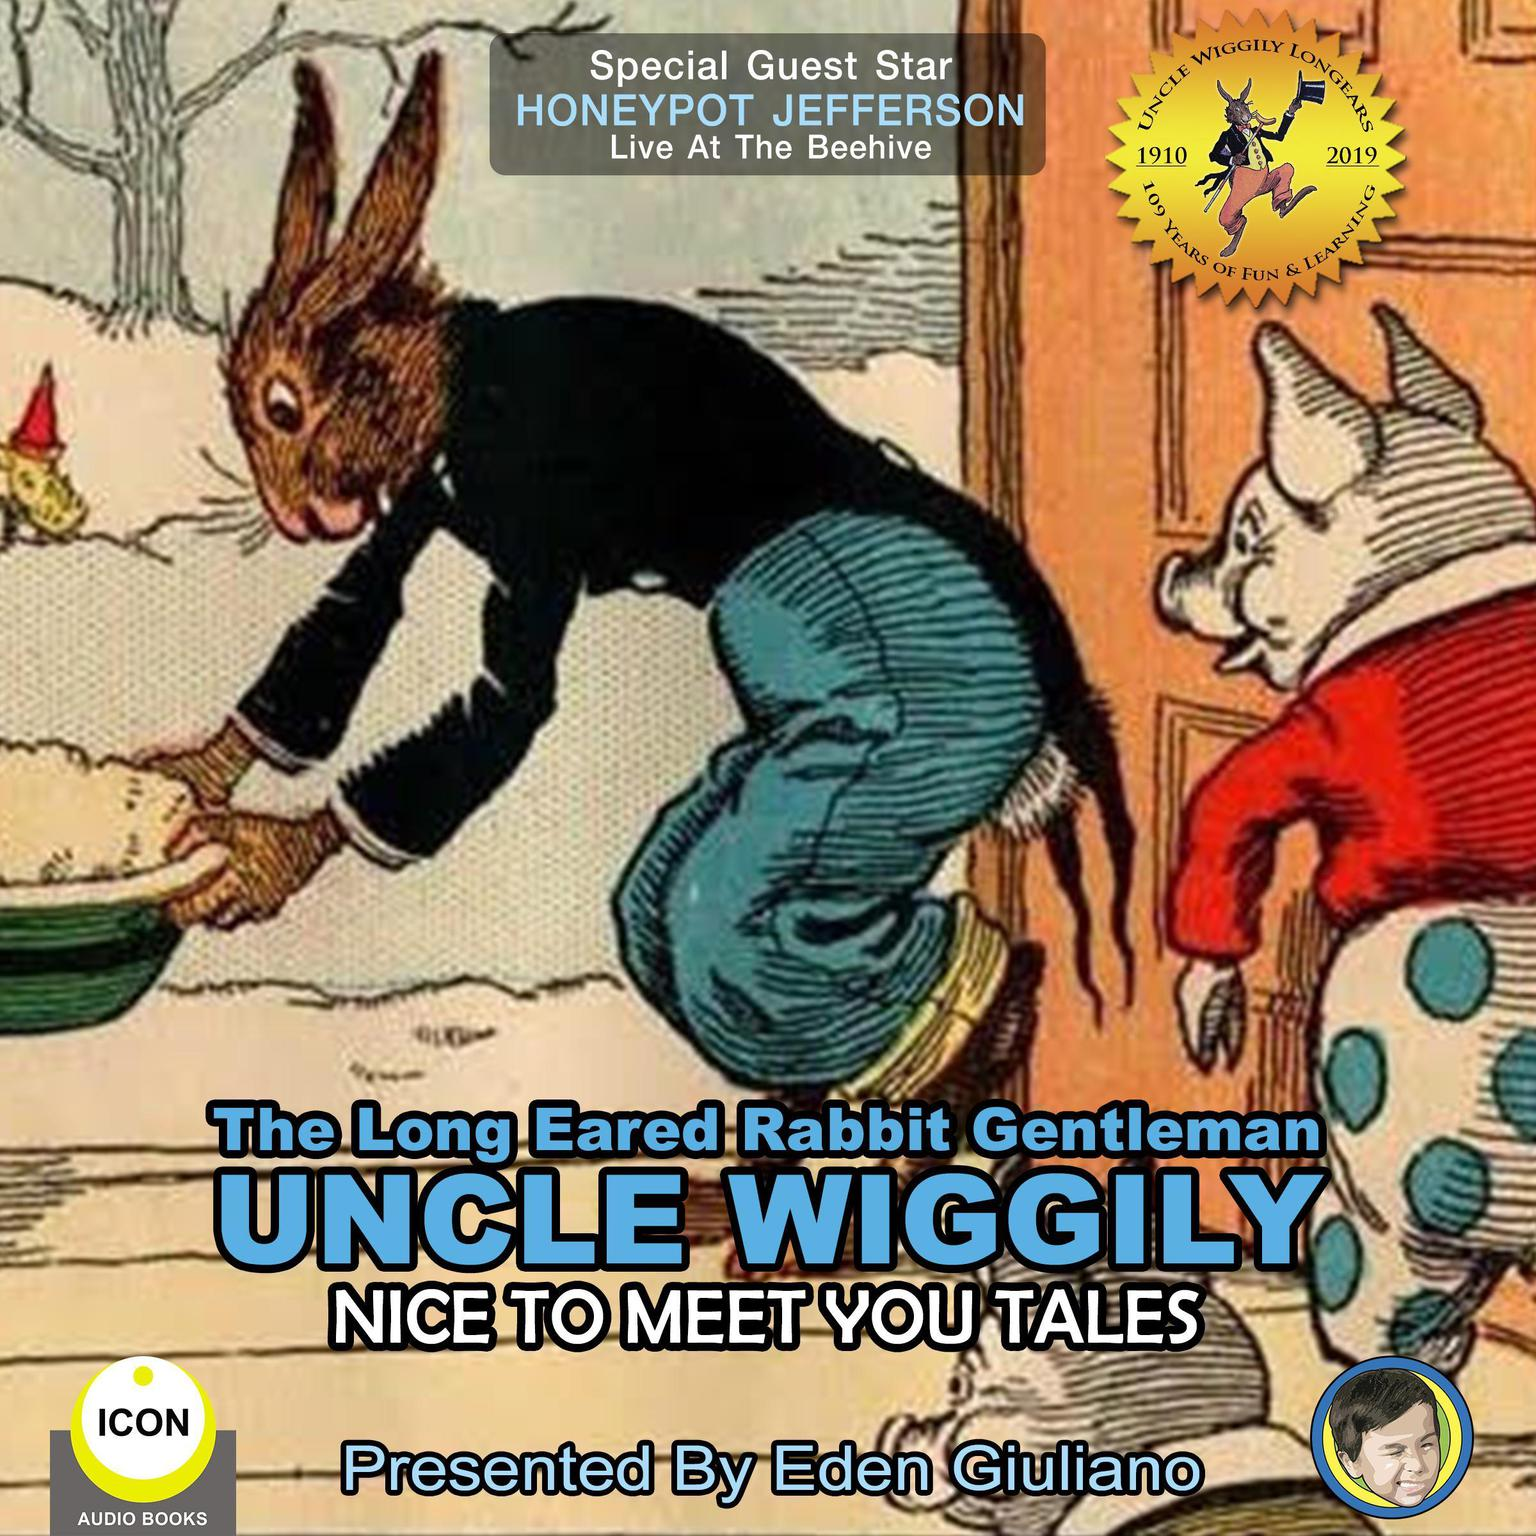 Printable The Long Eared Rabbit Gentleman Uncle Wiggily - Nice To Meet You Tales Audiobook Cover Art